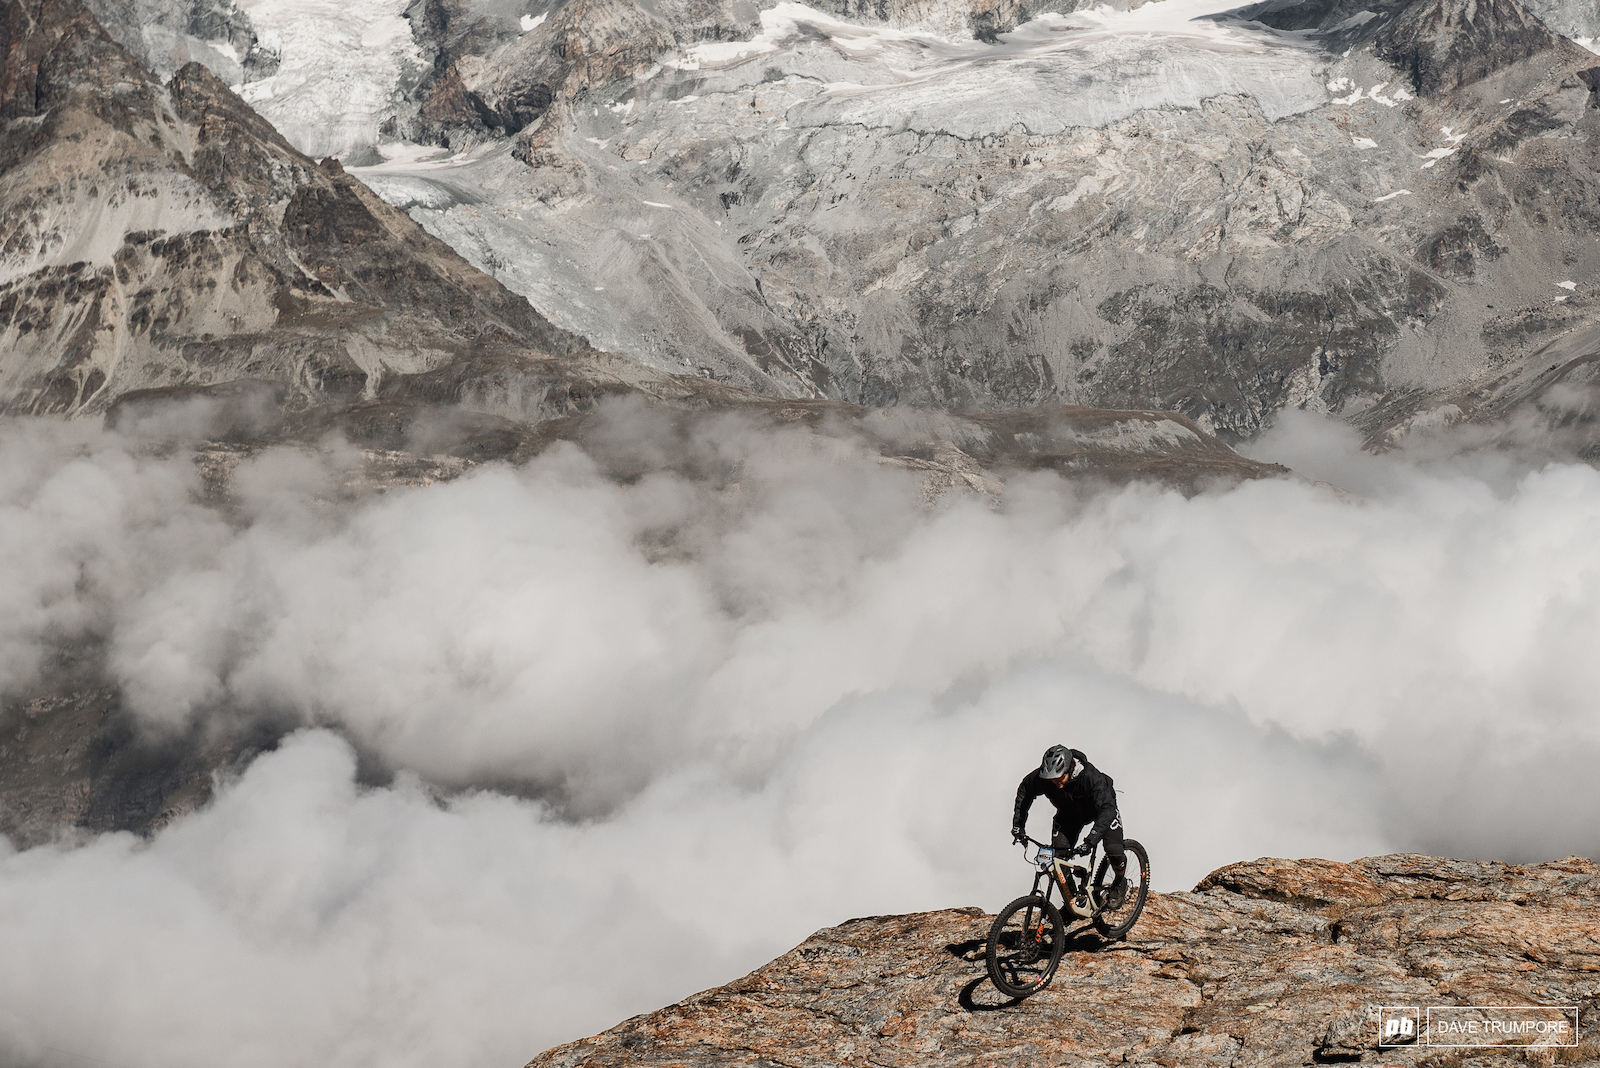 Rocking out above the clouds on stage 3